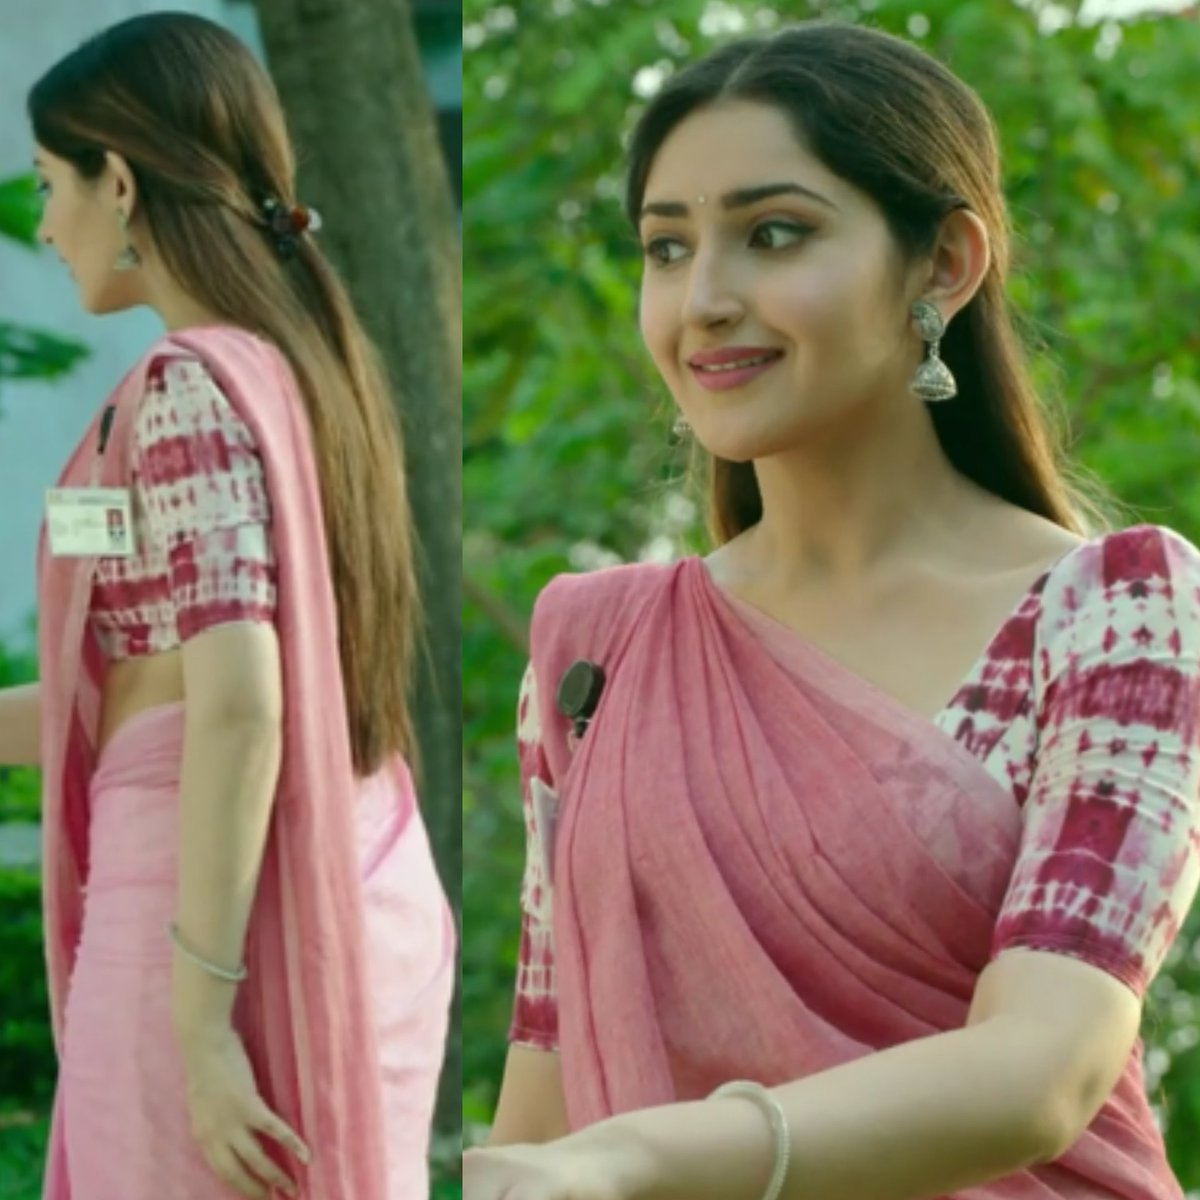 Married at Young age - So, Sayyeshaa will continue acting!